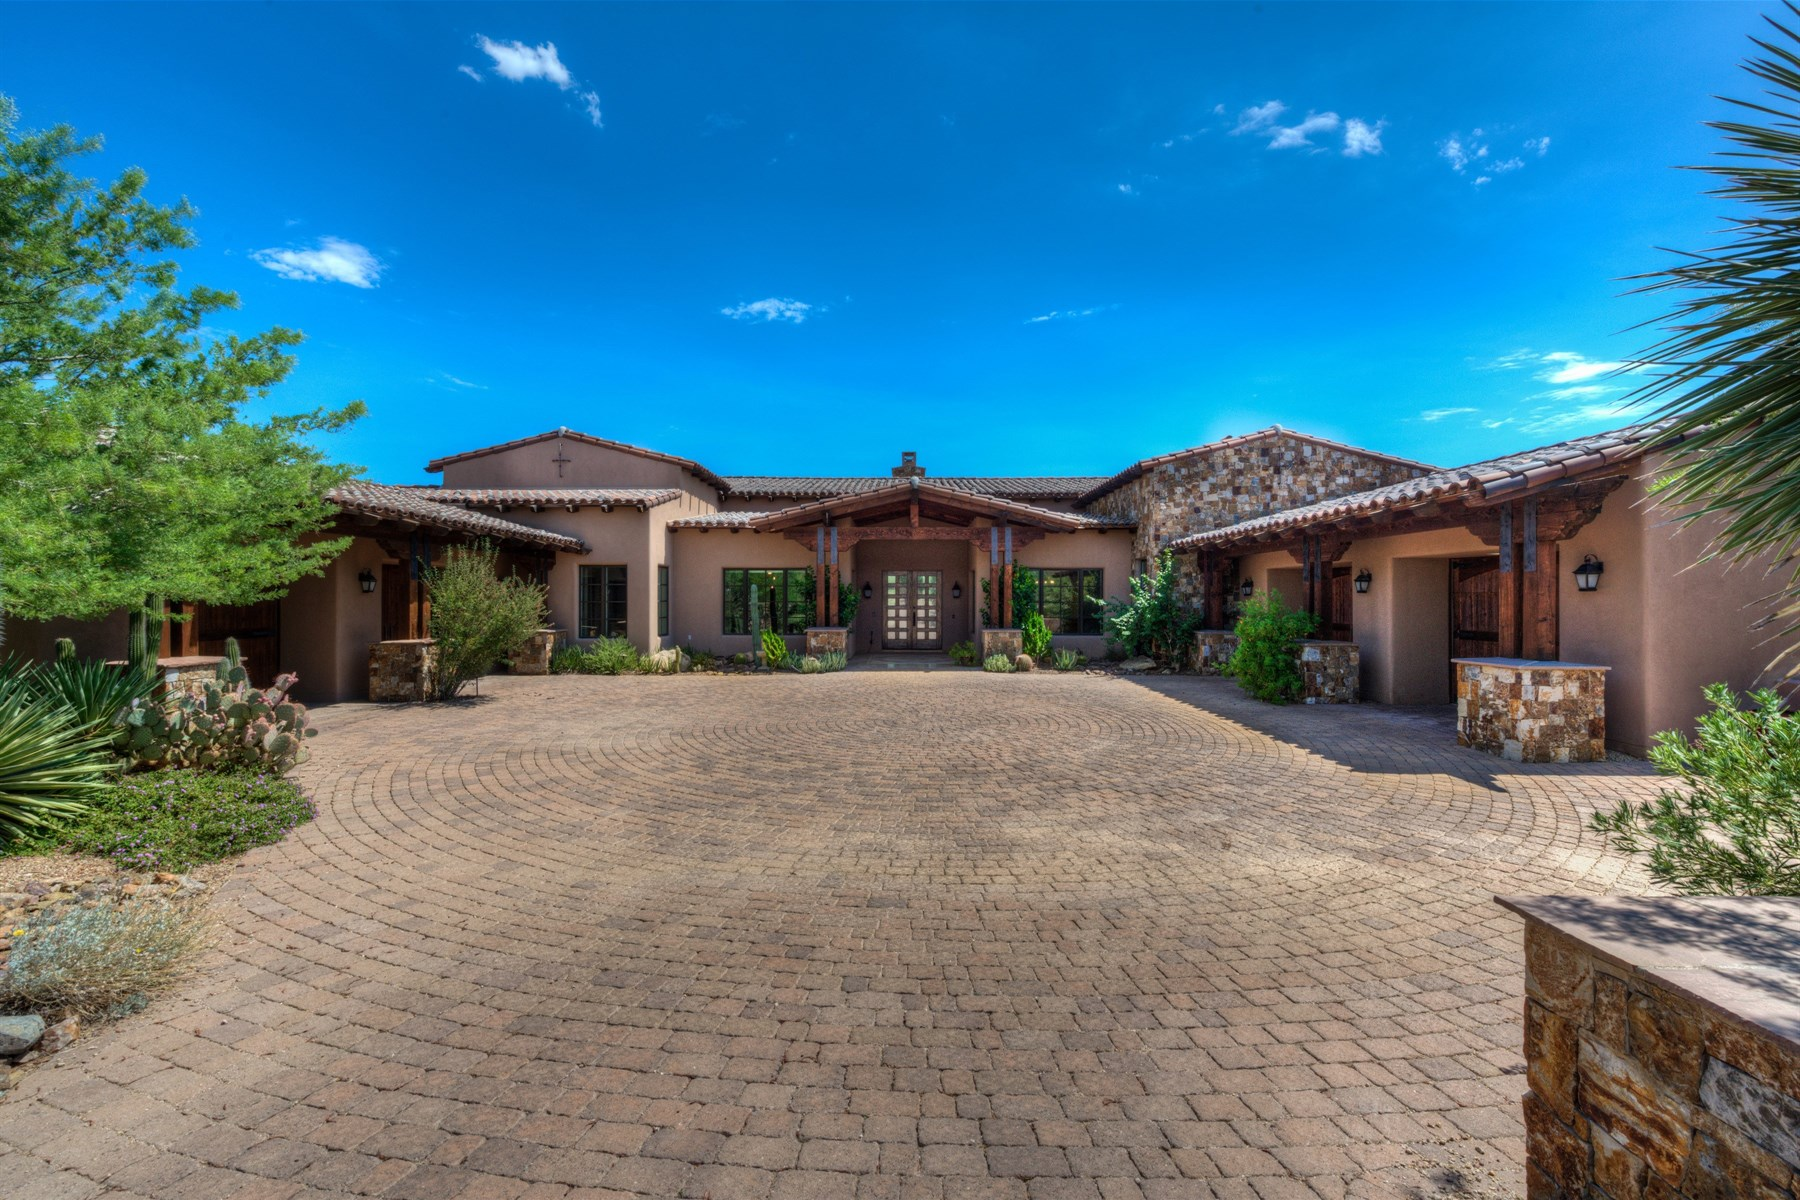 独户住宅 为 销售 在 Elegant Ranch-Inspired Home Located In Guard-Gated Whisper Rock Estates 8427 E Homestead Circle 斯科茨代尔, 亚利桑那州, 85266 美国